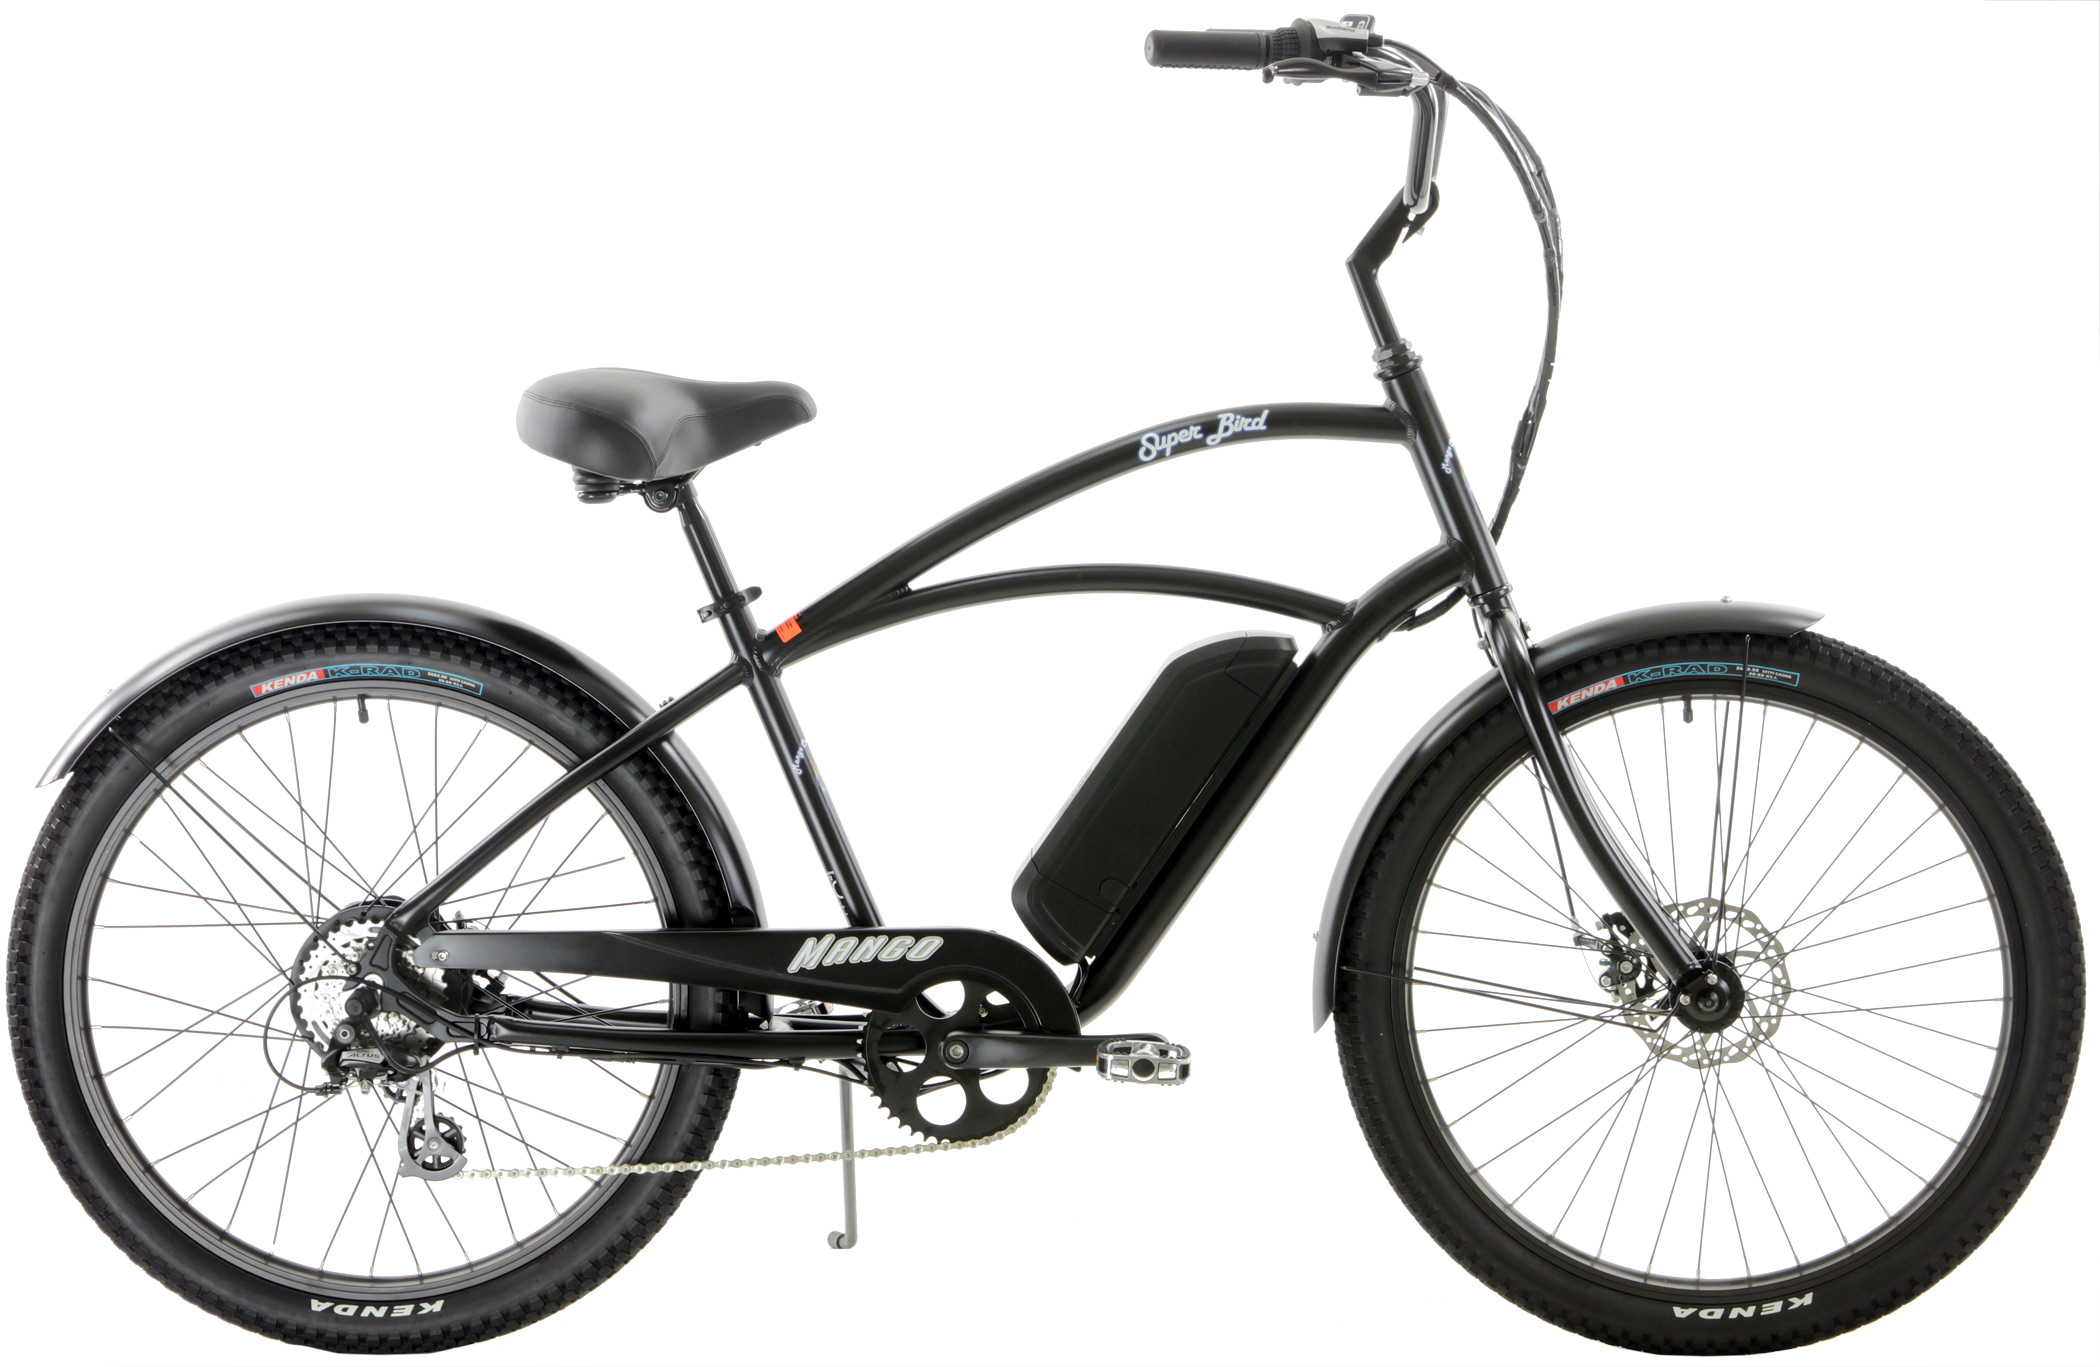 Bikes Mango Superbird Electric Bike Cruiser Disc Brake 250 Watt eBike Image